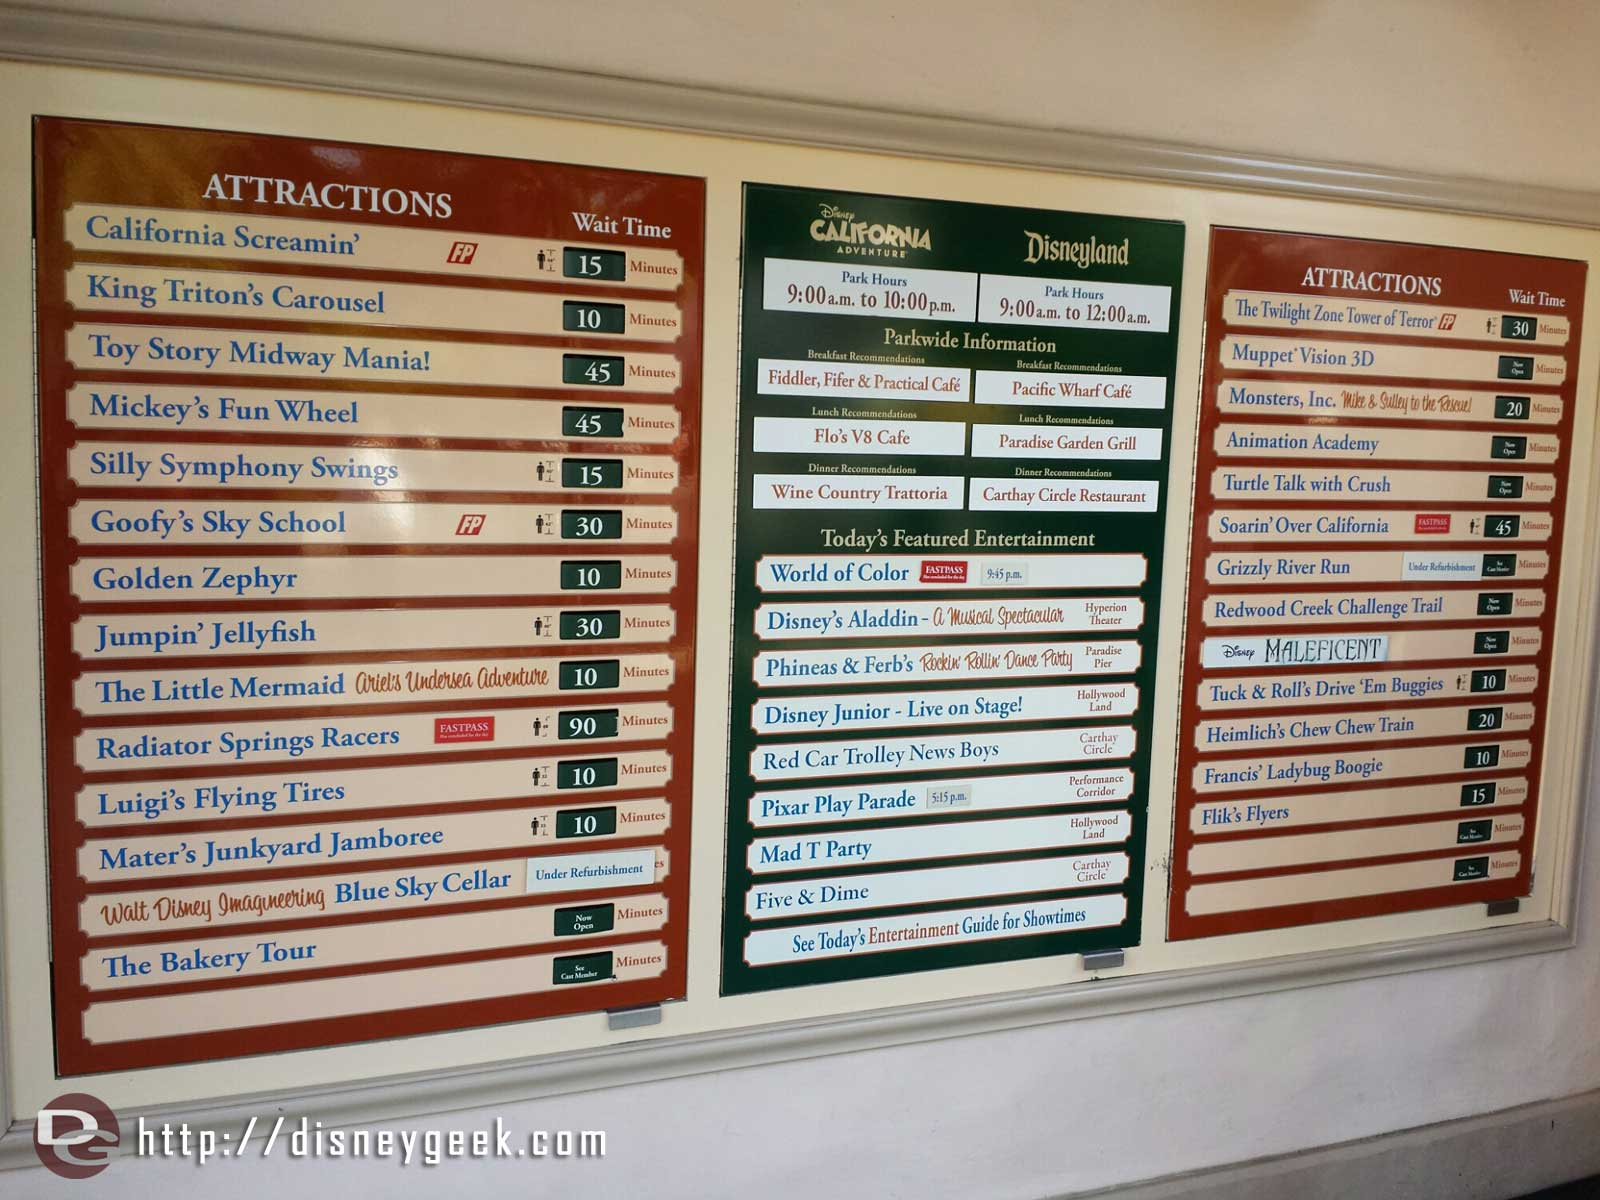 Disney California Adventure waits as of 4:25pm